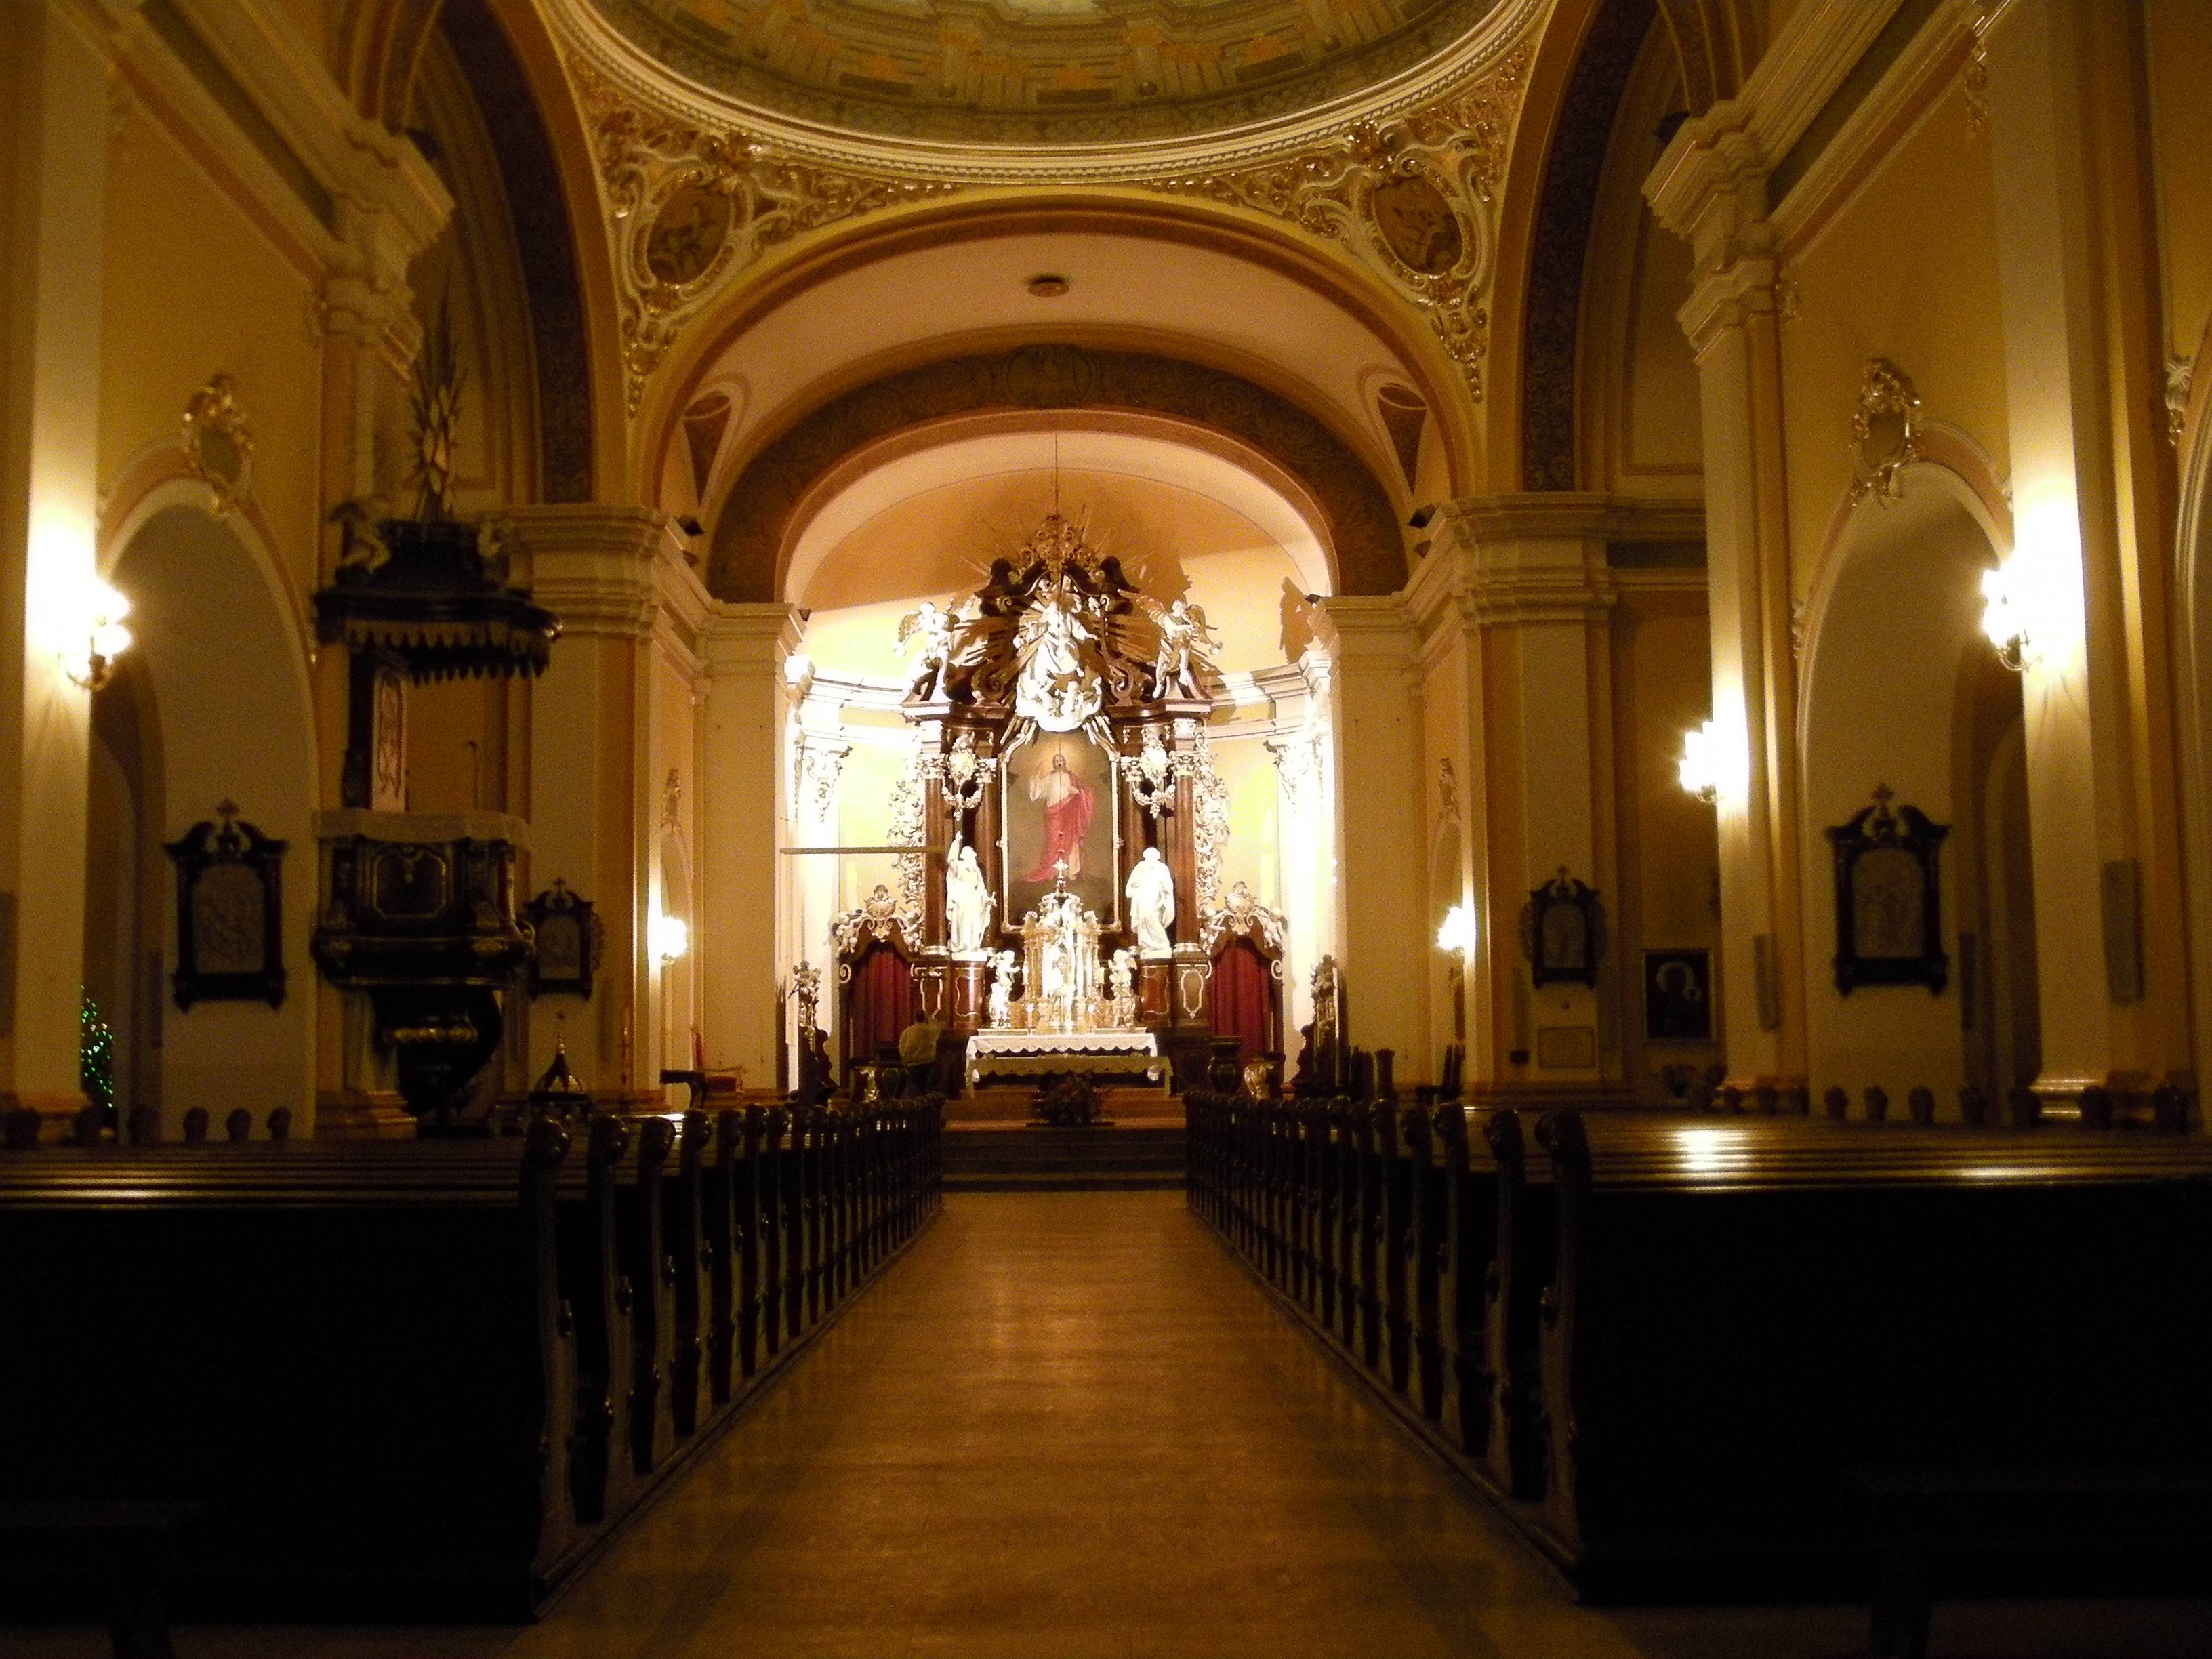 Church Interior, Bydgoszcz, Poland.